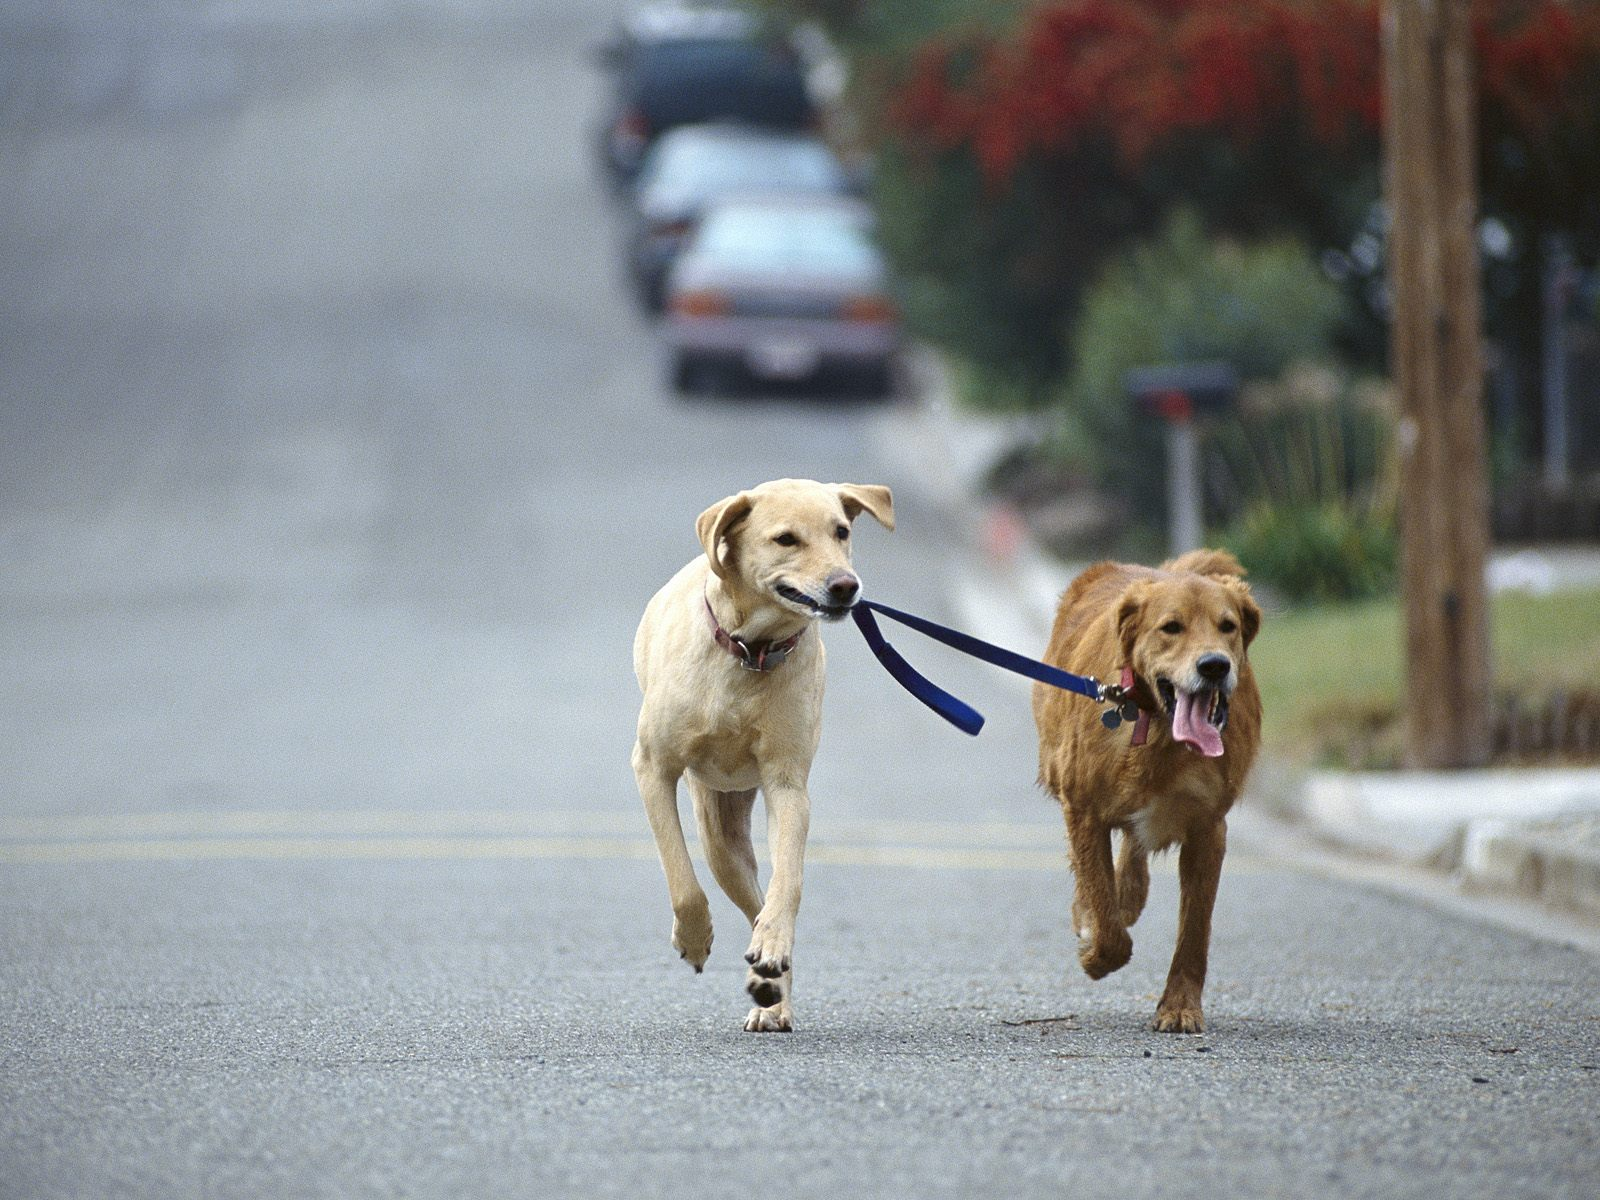 Dog Walking Golden and Yellow Labrador Retriever Mix 1600x1200